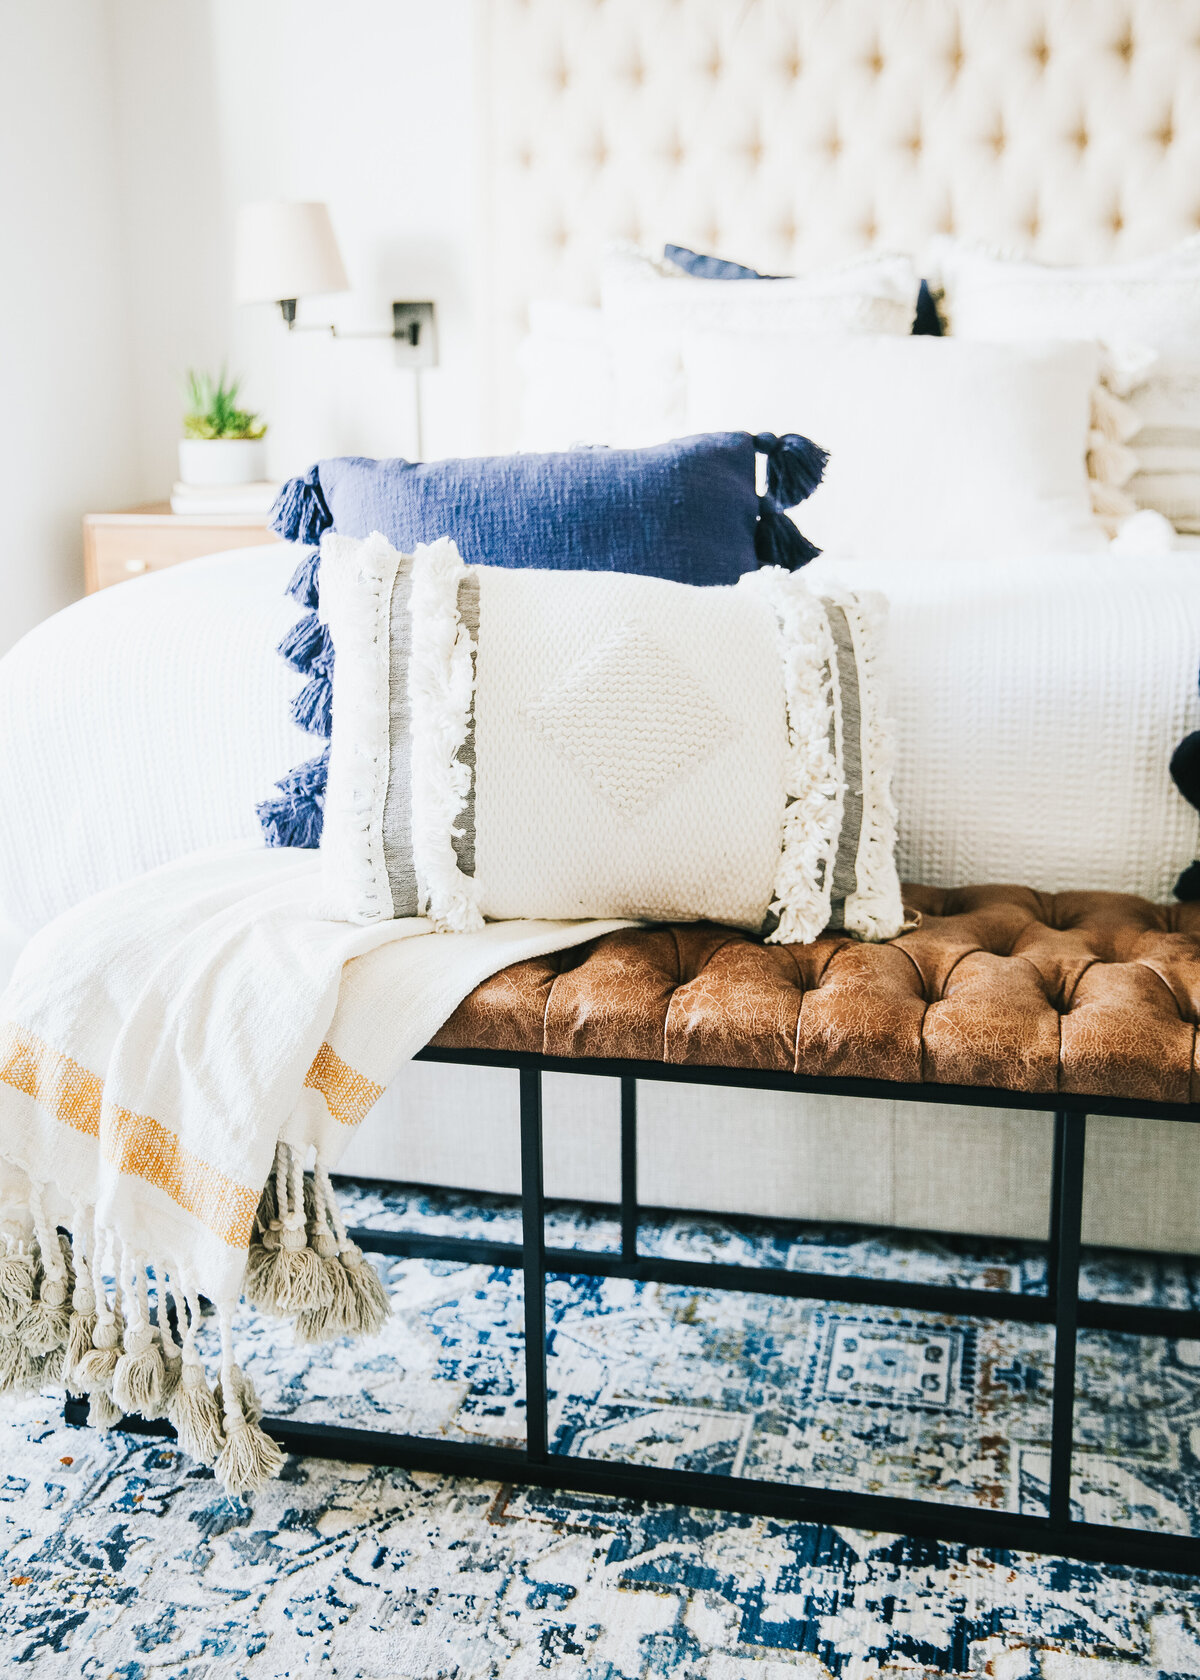 A white painted bedroom features a padded headboard white sheets, with a navy throw and a tan leather bench at the end.